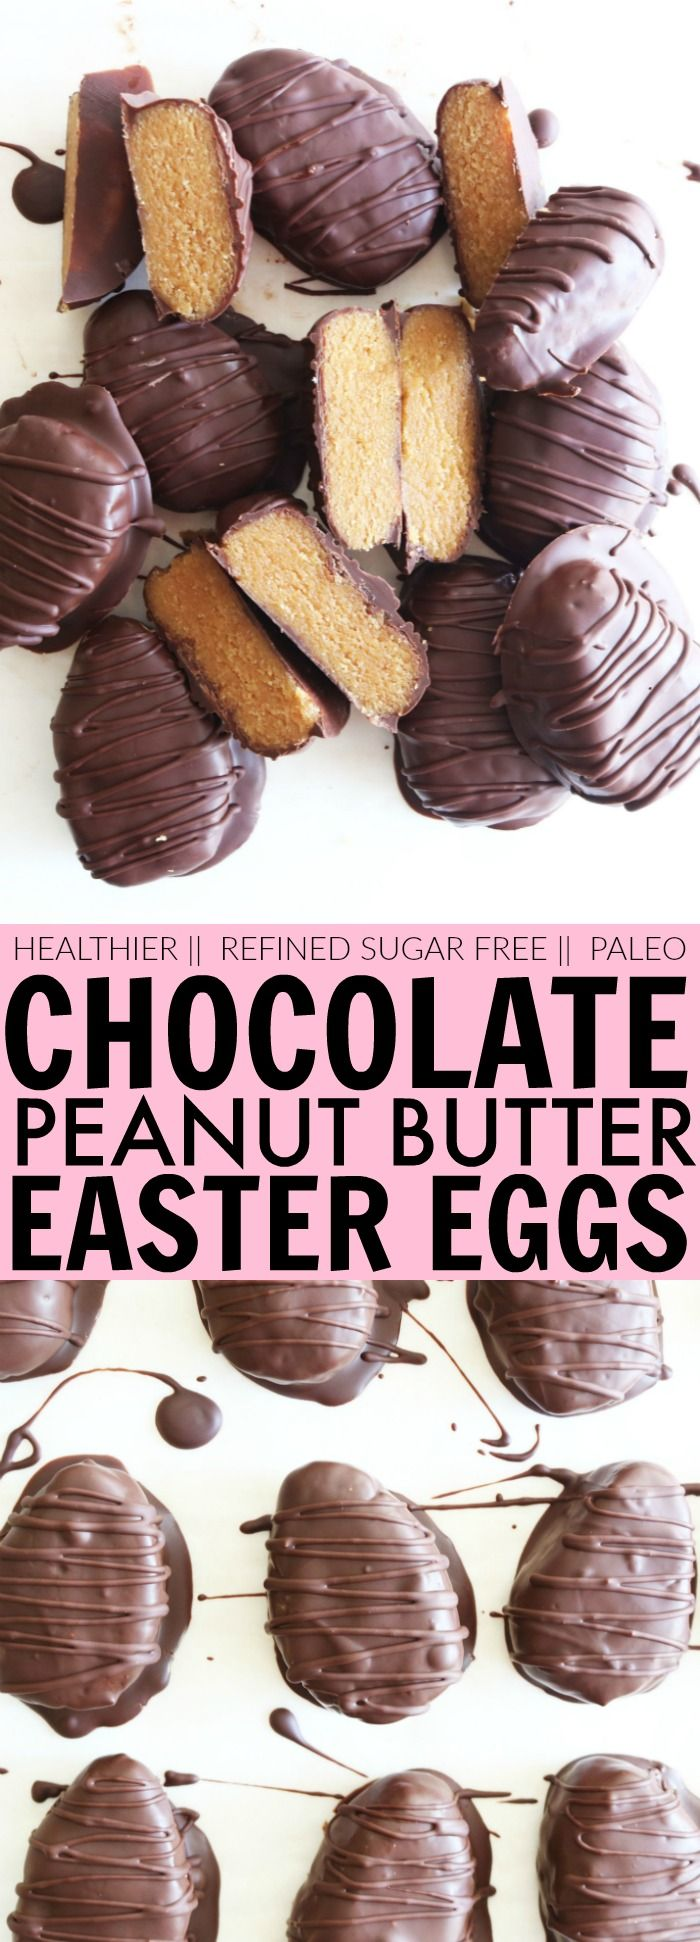 These healthier Chocolate Peanut Butter Easter Eggs are gluten free, refined sugar free and will spare you that dreaded sugar crash! With only a handful of simple, wholesome ingredients, you'll be handing these adorable eggs out like candy ;-) thetoastedpinenut.com #glutenfree #refinedsugarfree #candy #easter #eggs #chocolate #peanutbutter #paleo